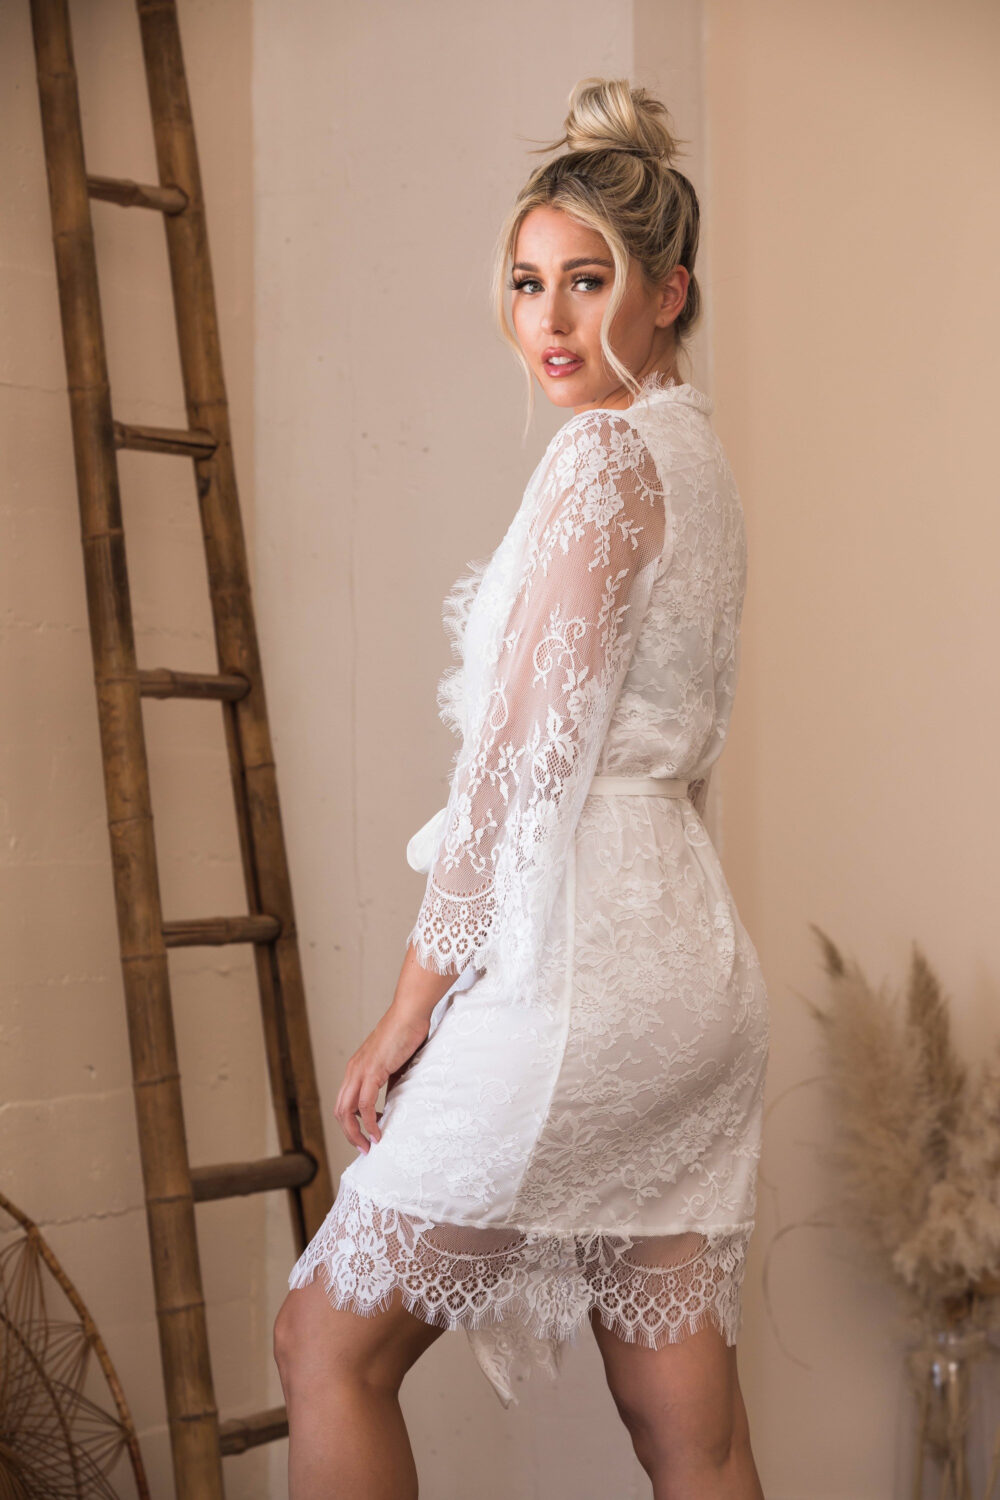 Lace Wedding Robes-Bridal Robe-Bridesmaid Robes-Bride Robe-Bridal Party Shower Gift-Gift For Bride-Lace Gifts